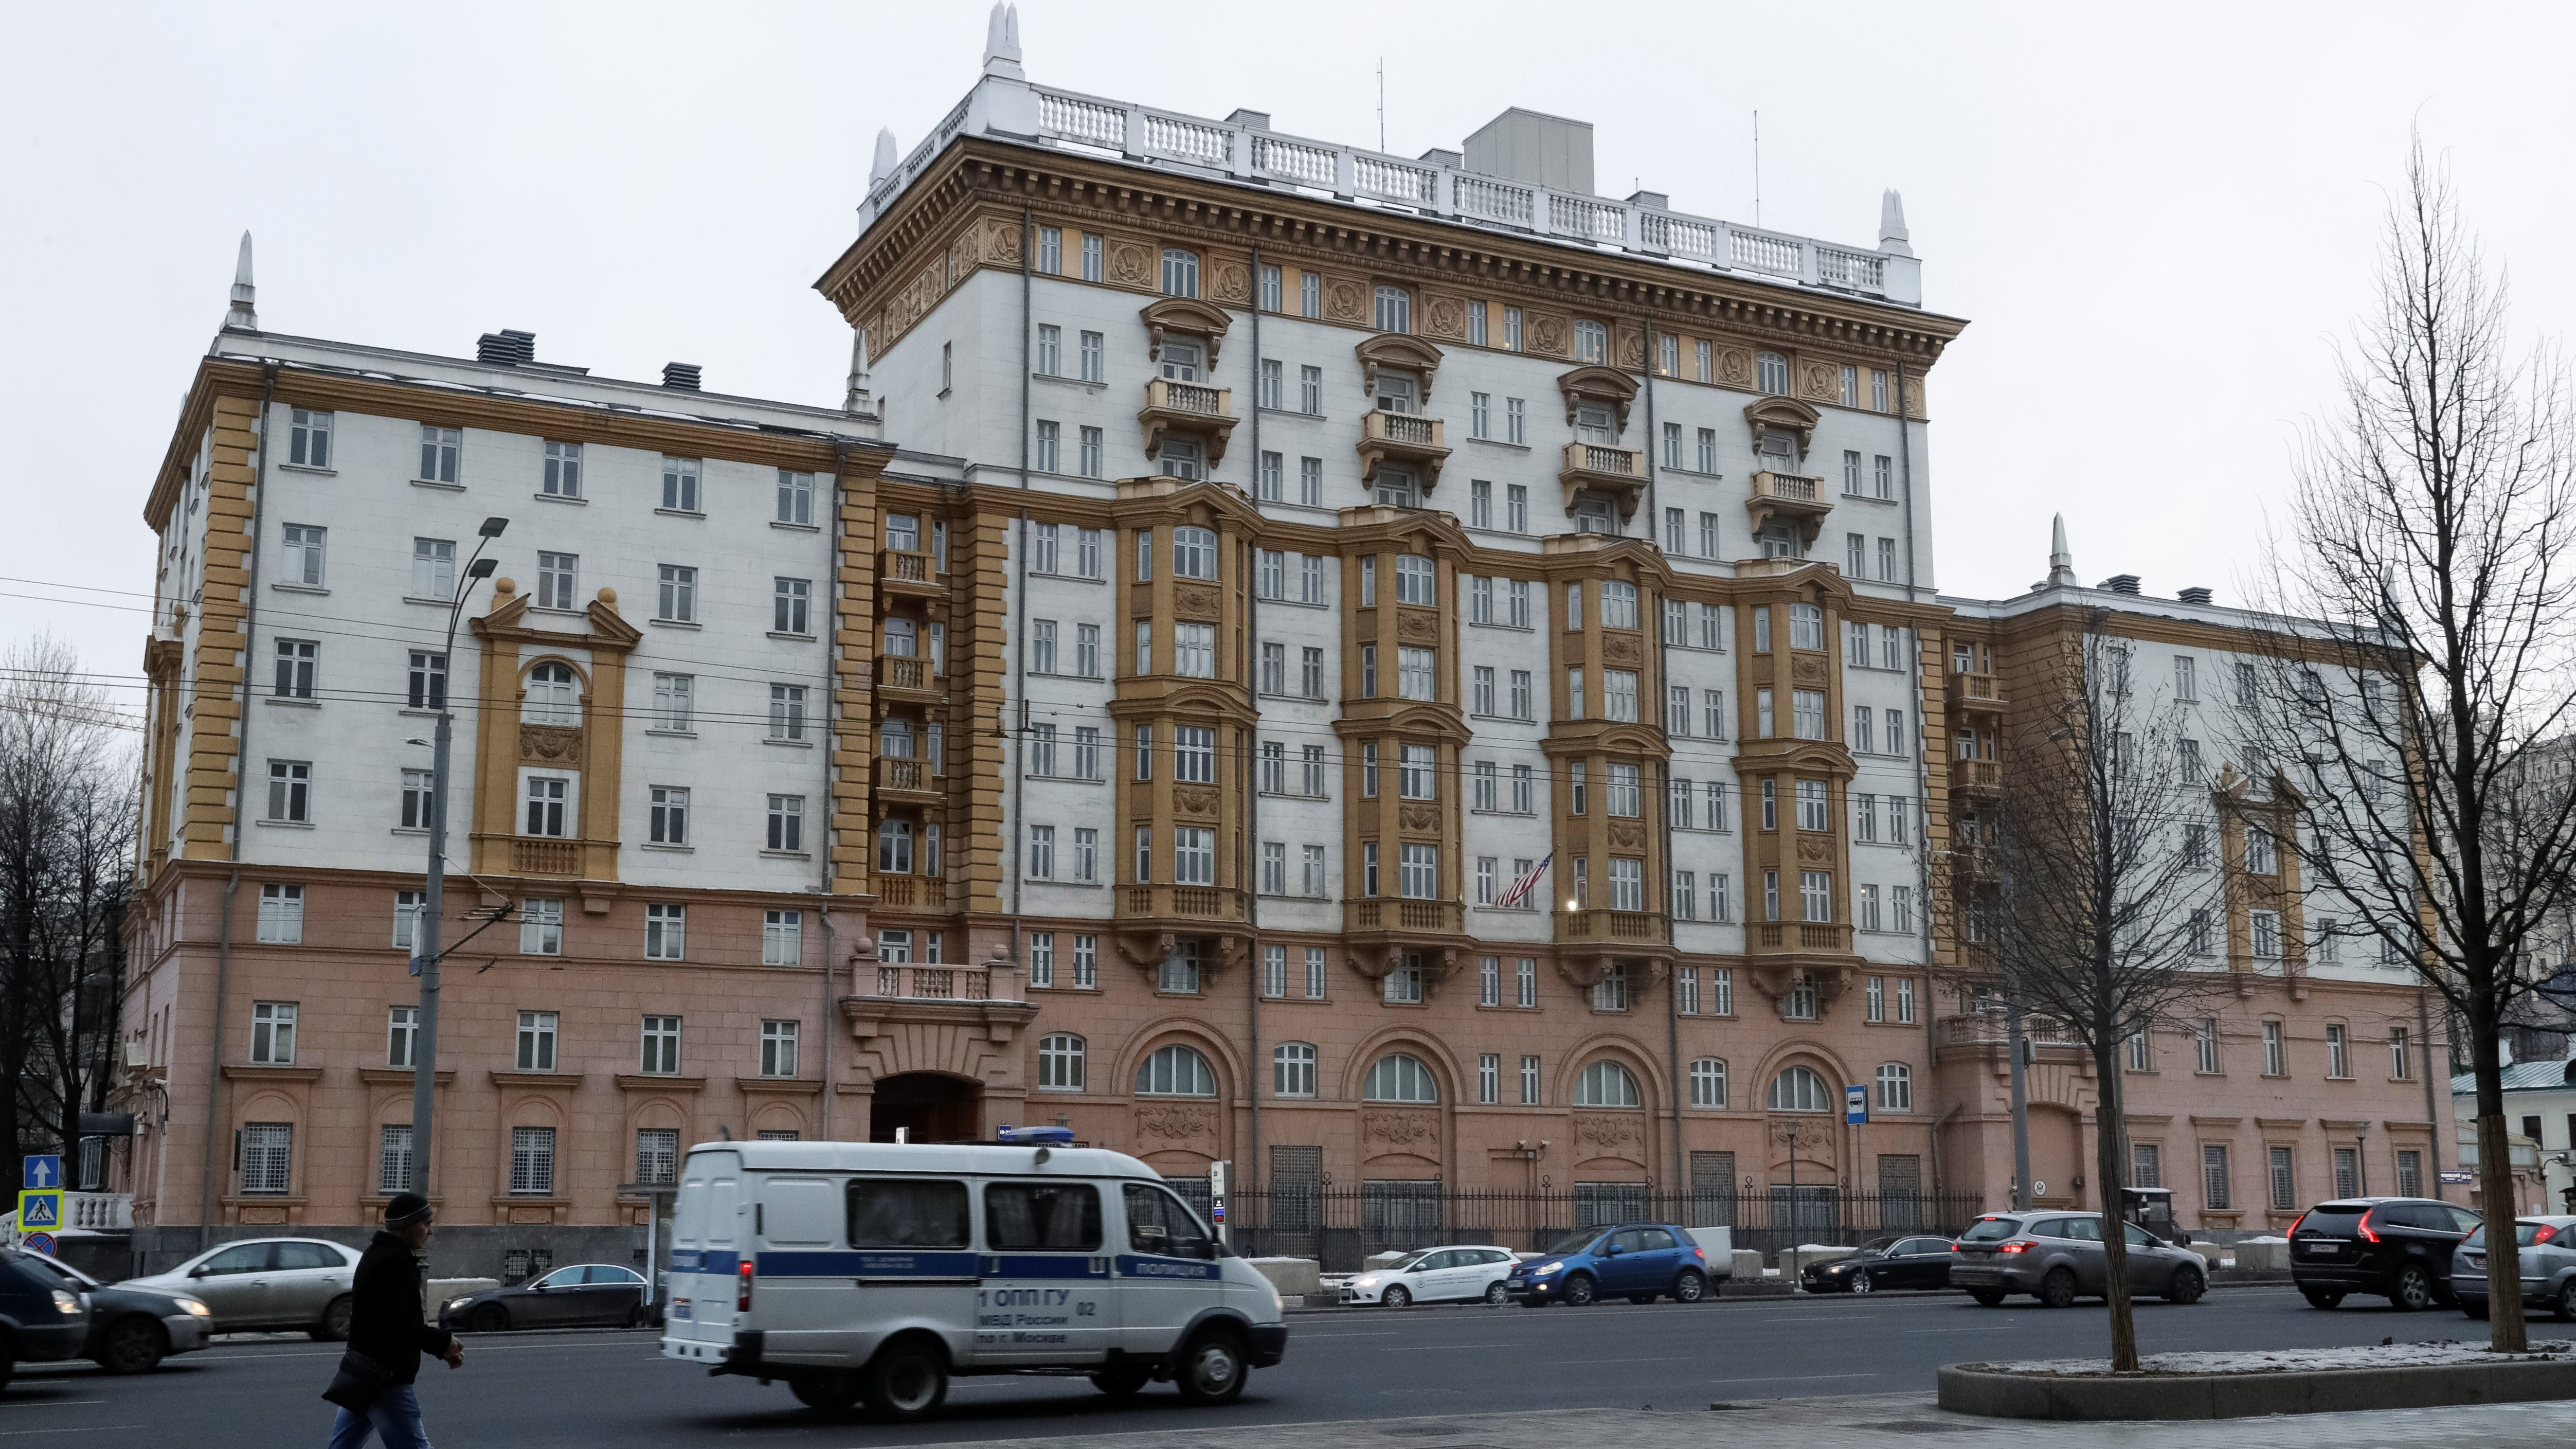 The US embassy in Moscow will be taking far fewer visa applicants from now on.